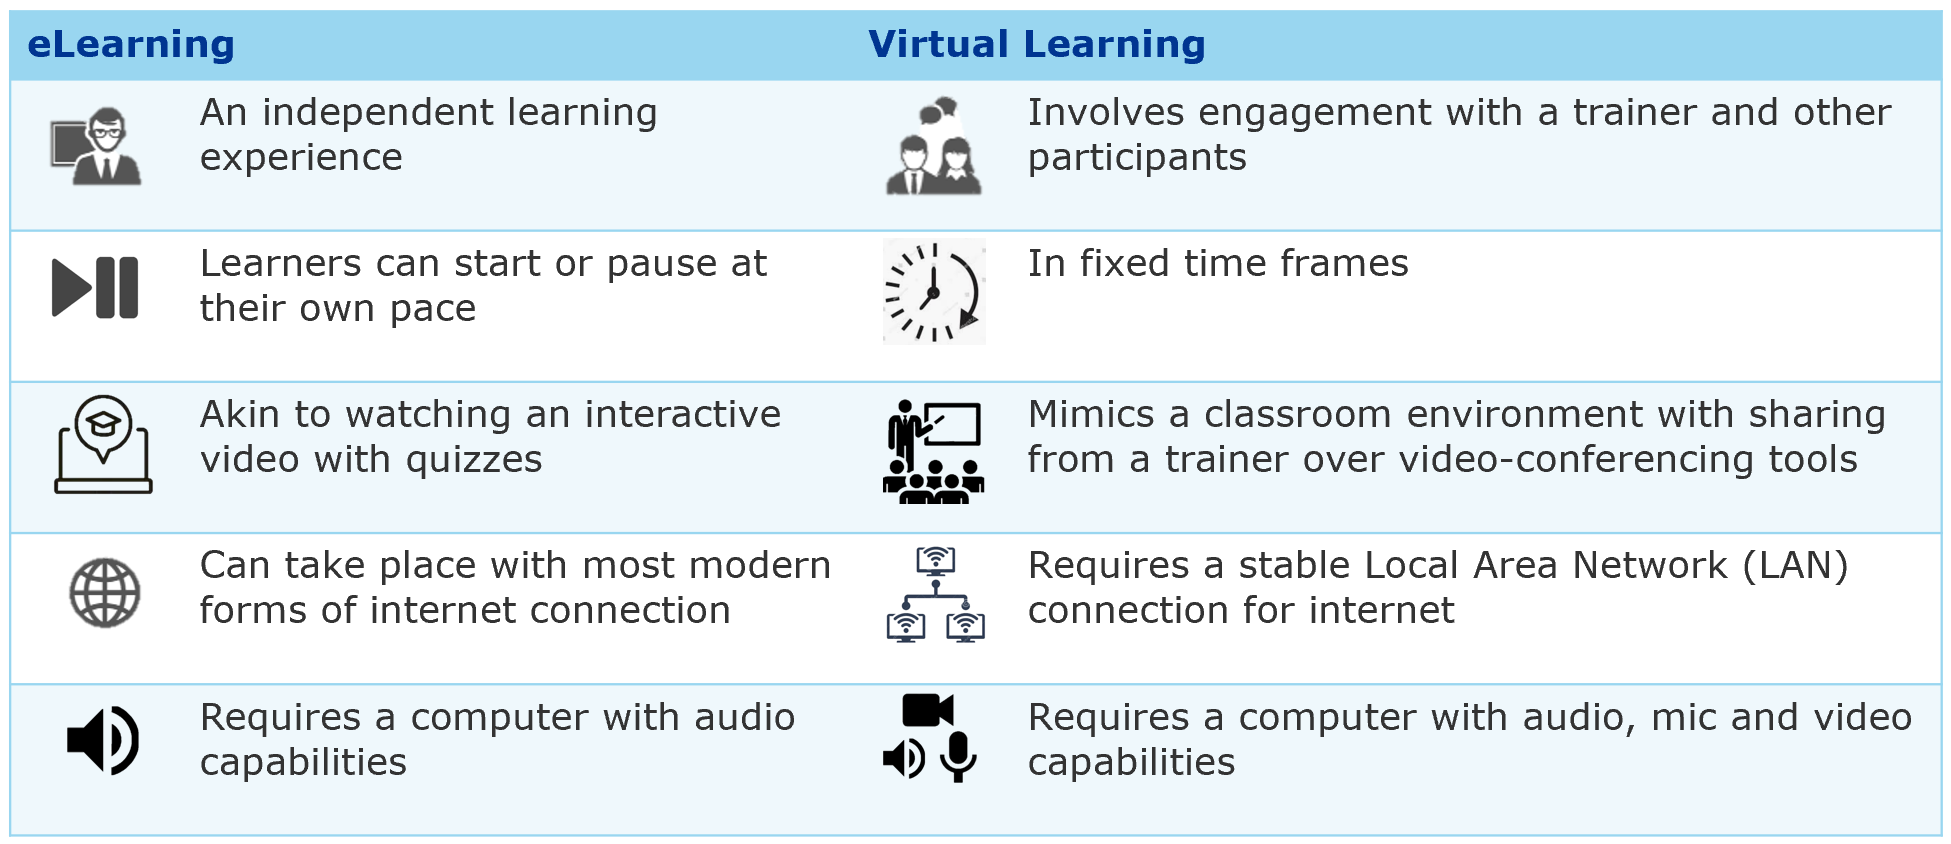 Difference-elearning-virtuallearning-image